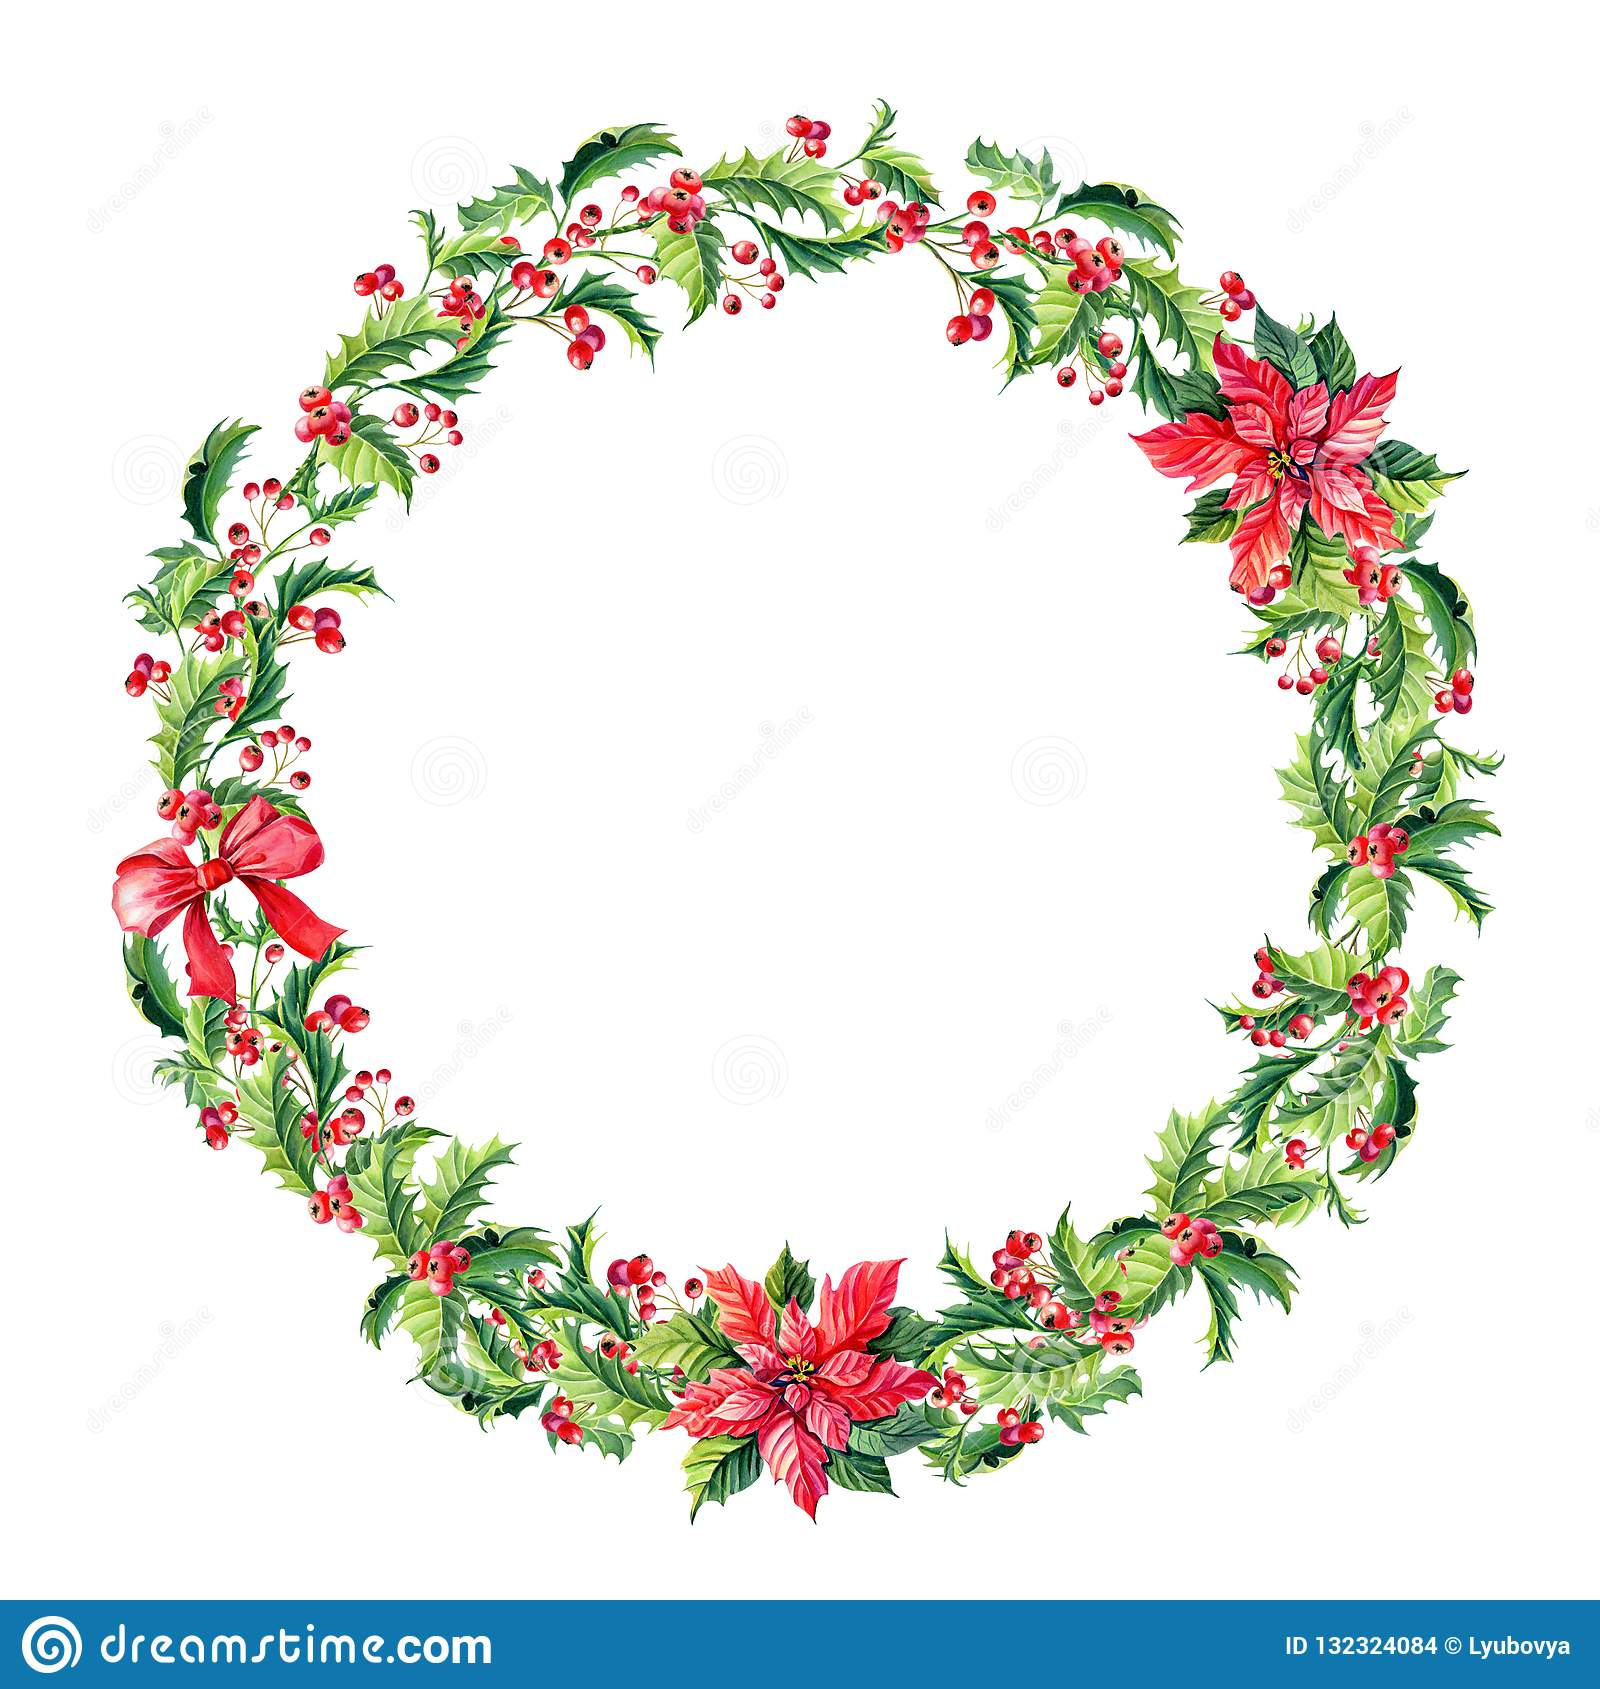 Watercolor Merry Christmas Wreath with Red poinsettia flowers,Holly,leaves,berries